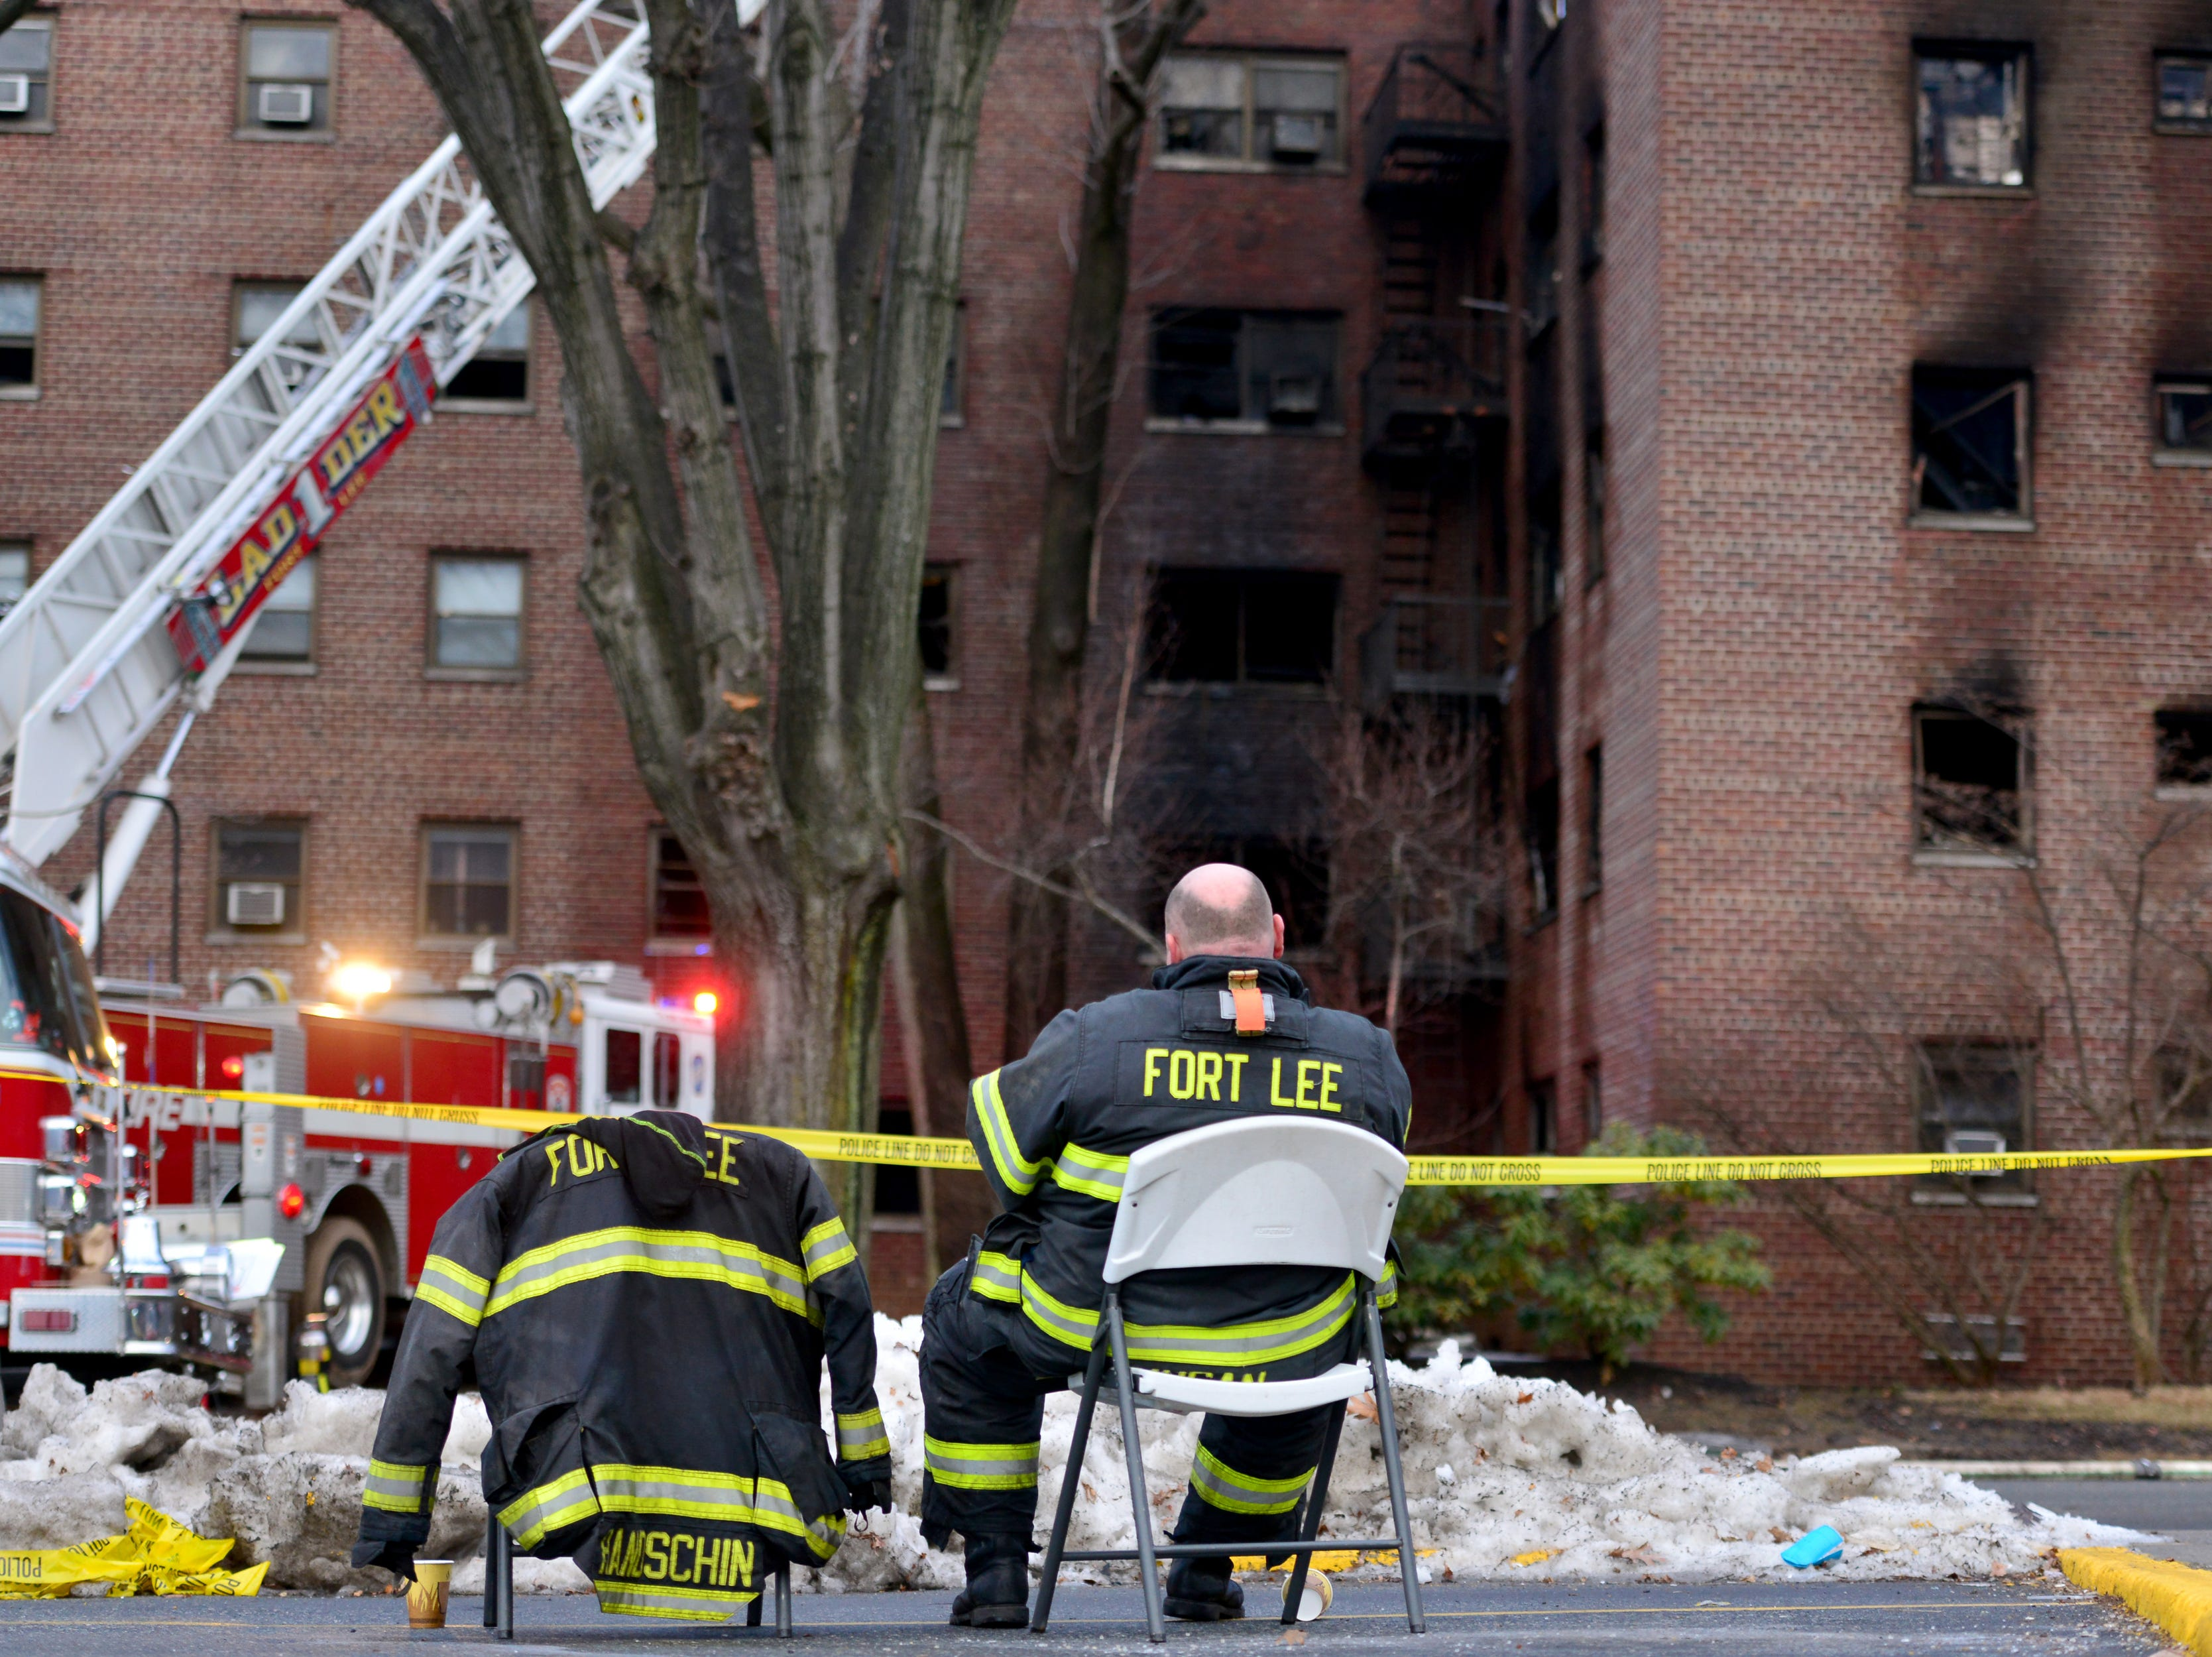 Fort Lee firefighter John Nugan closes his eyes after being at the fire scene since yesterday afternoon. Firefighters are hitting hot spots the morning after a fire broke out at an apartment complex on Edwin Ave in Fort Lee on Friday February 15, 2019.